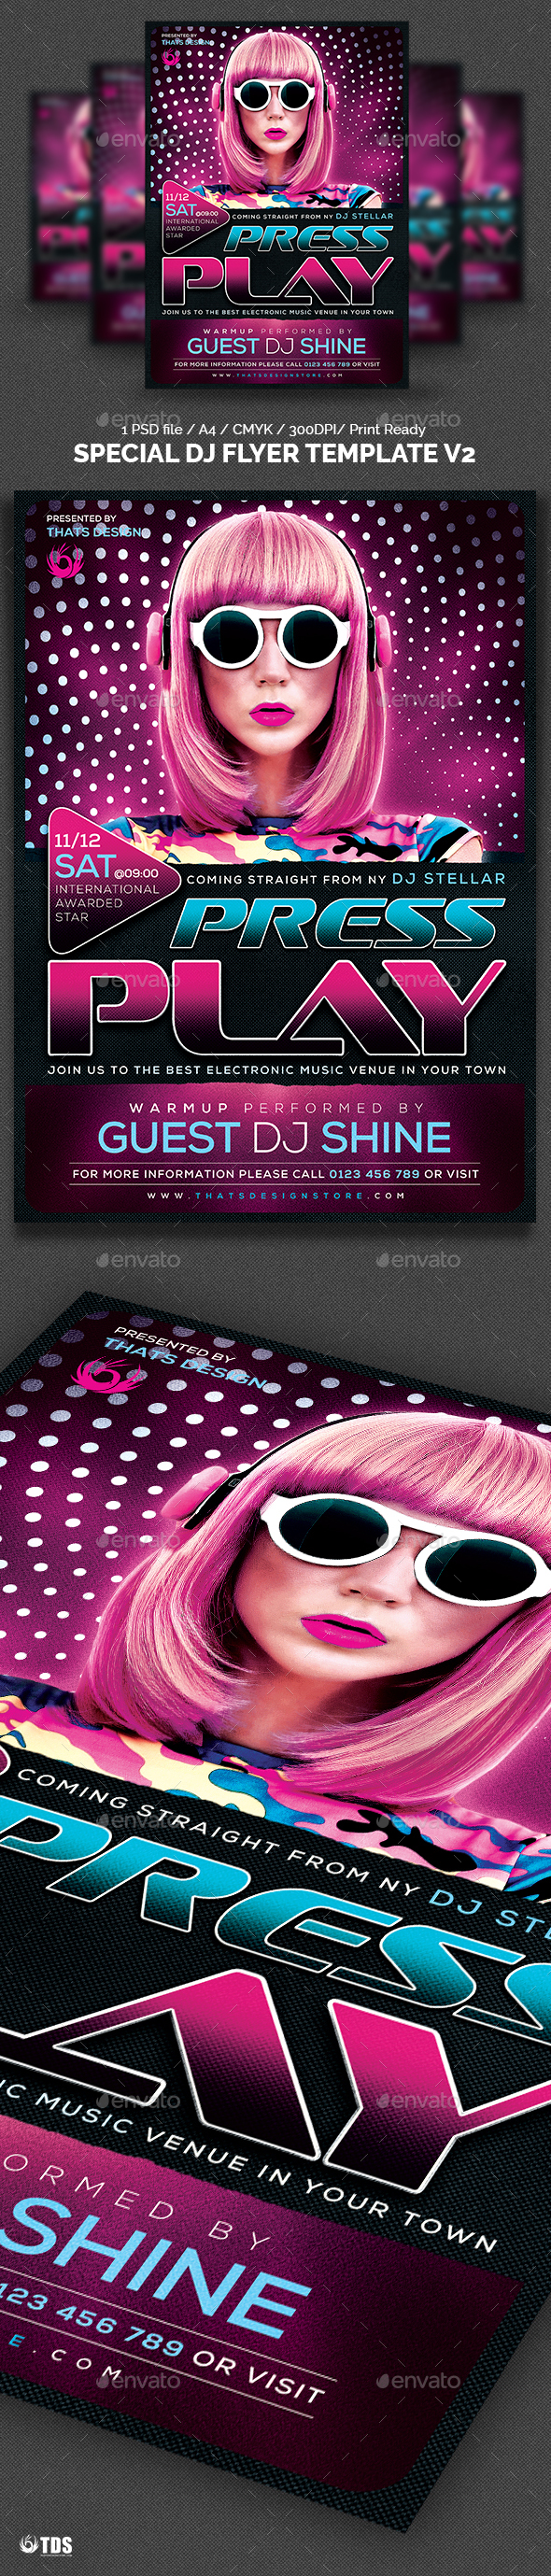 Special DJ Flyer Template V2 - Clubs & Parties Events